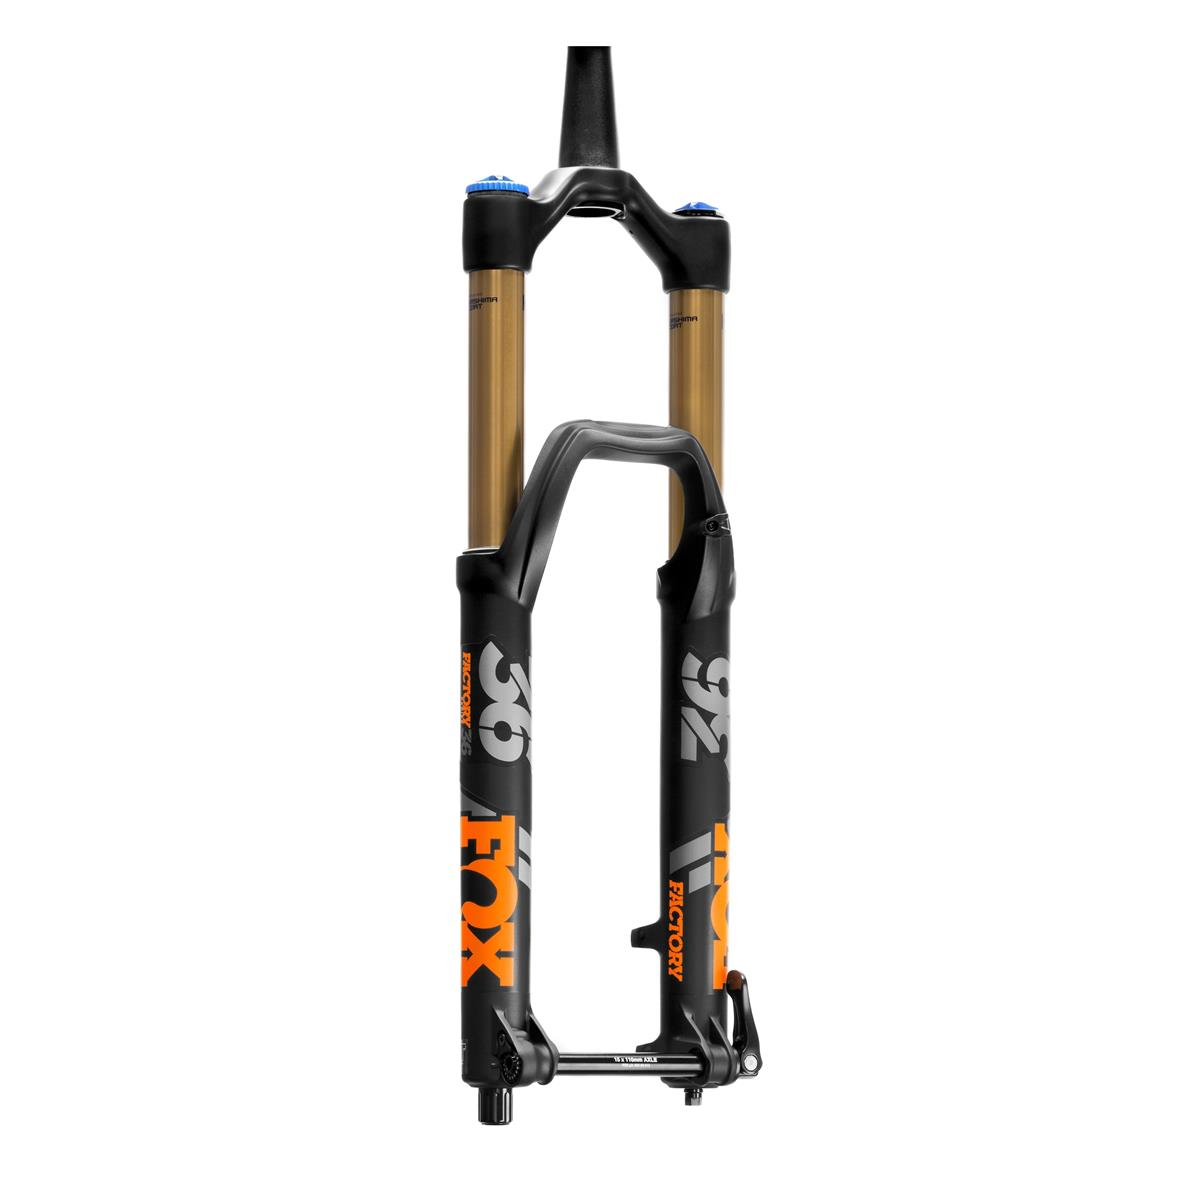 Fox Racing Shox Federgabel 36 Float Factory Kashima 2019 , 29 Zoll, 15x110 mm, GRIP2